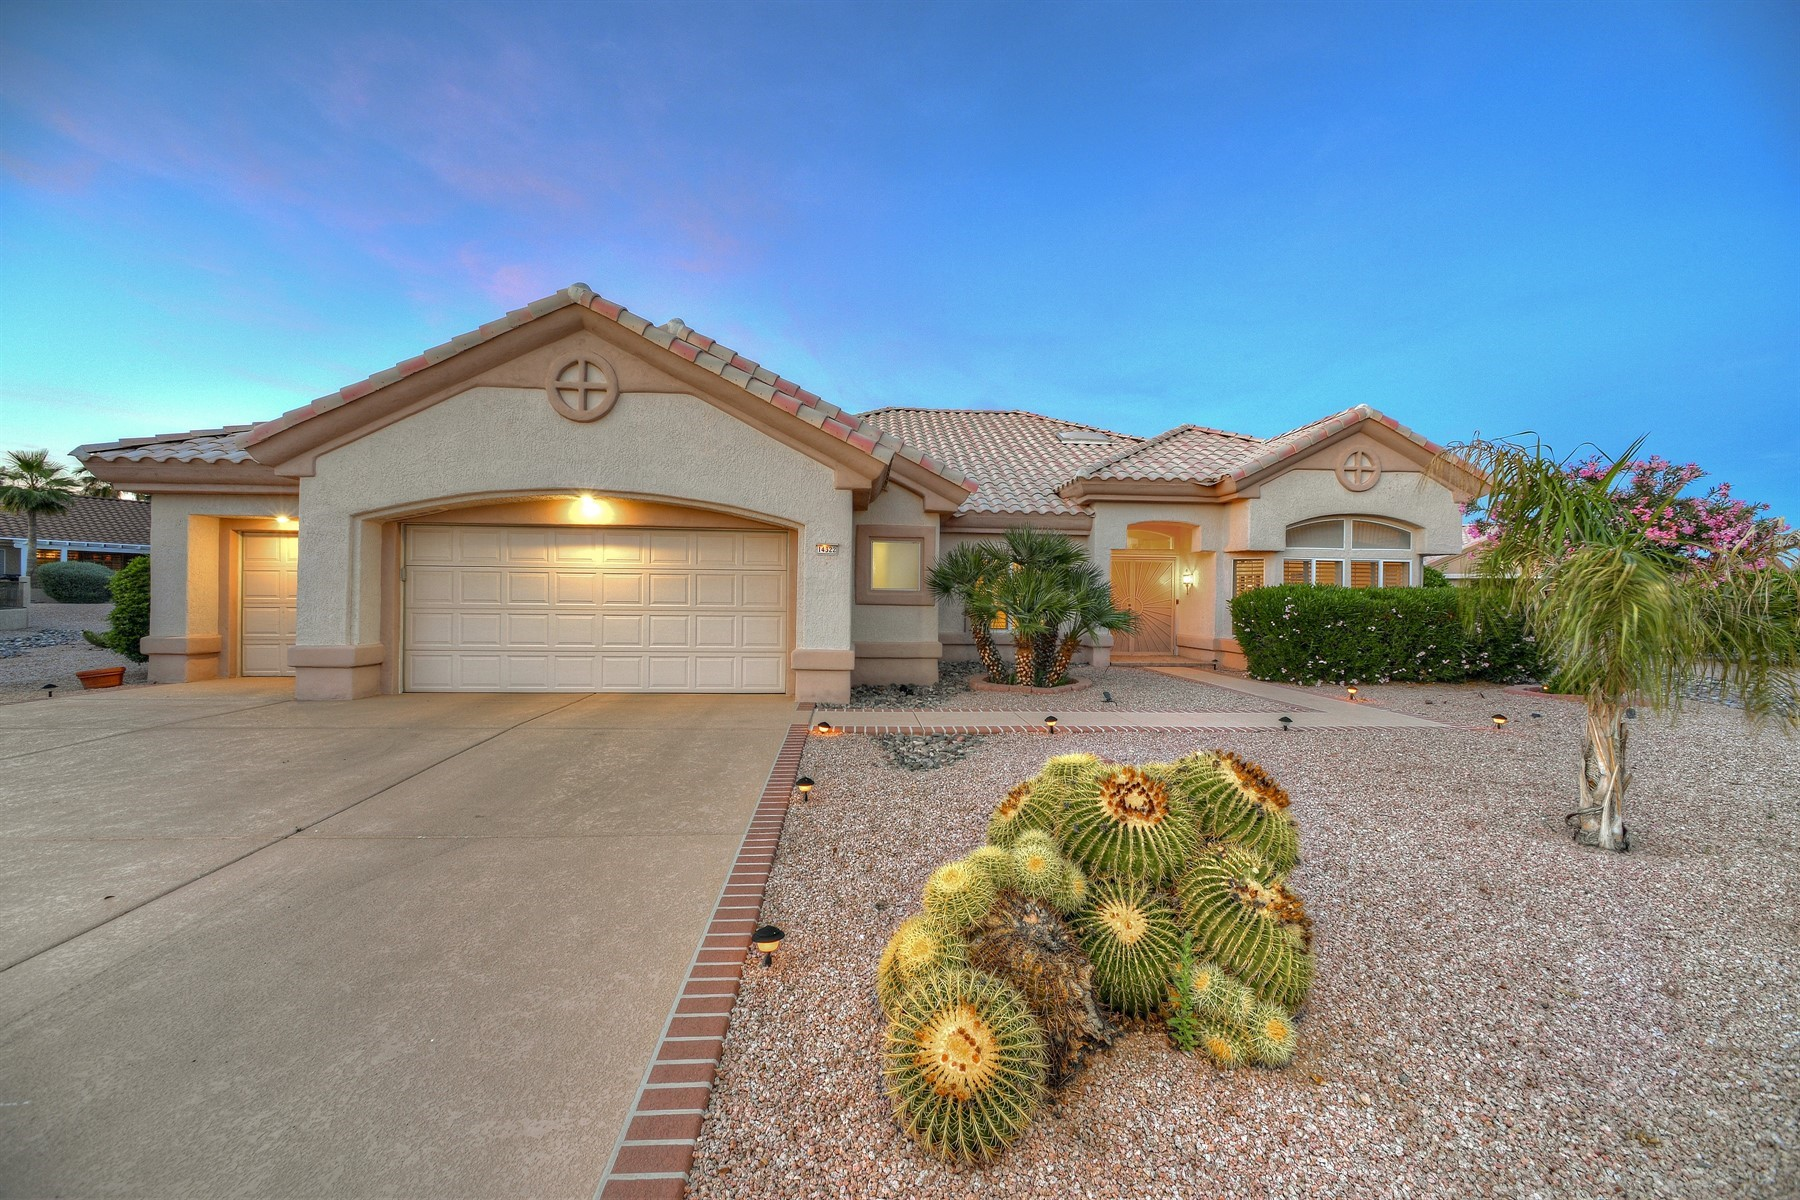 single family homes for Active at Immaculate Cottonwood Home 14322 W COLT LN Sun City West, Arizona 85375 United States